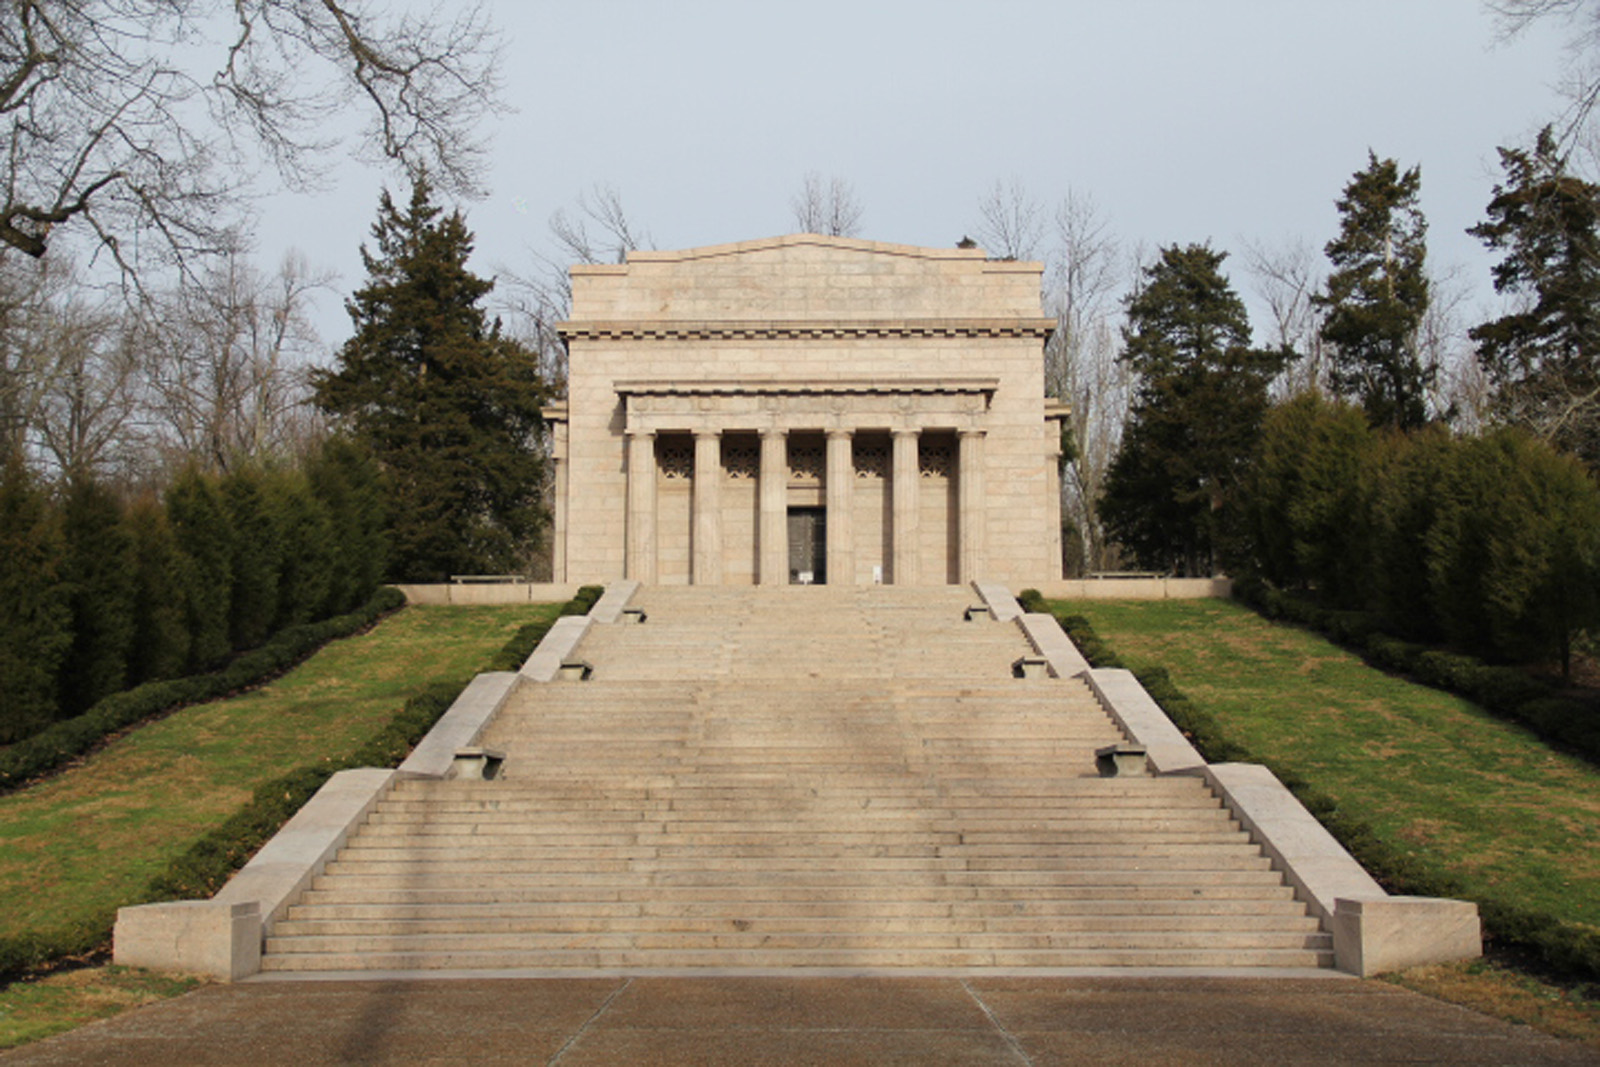 FileAbraham Lincoln Birthplace National Park Hodgenville